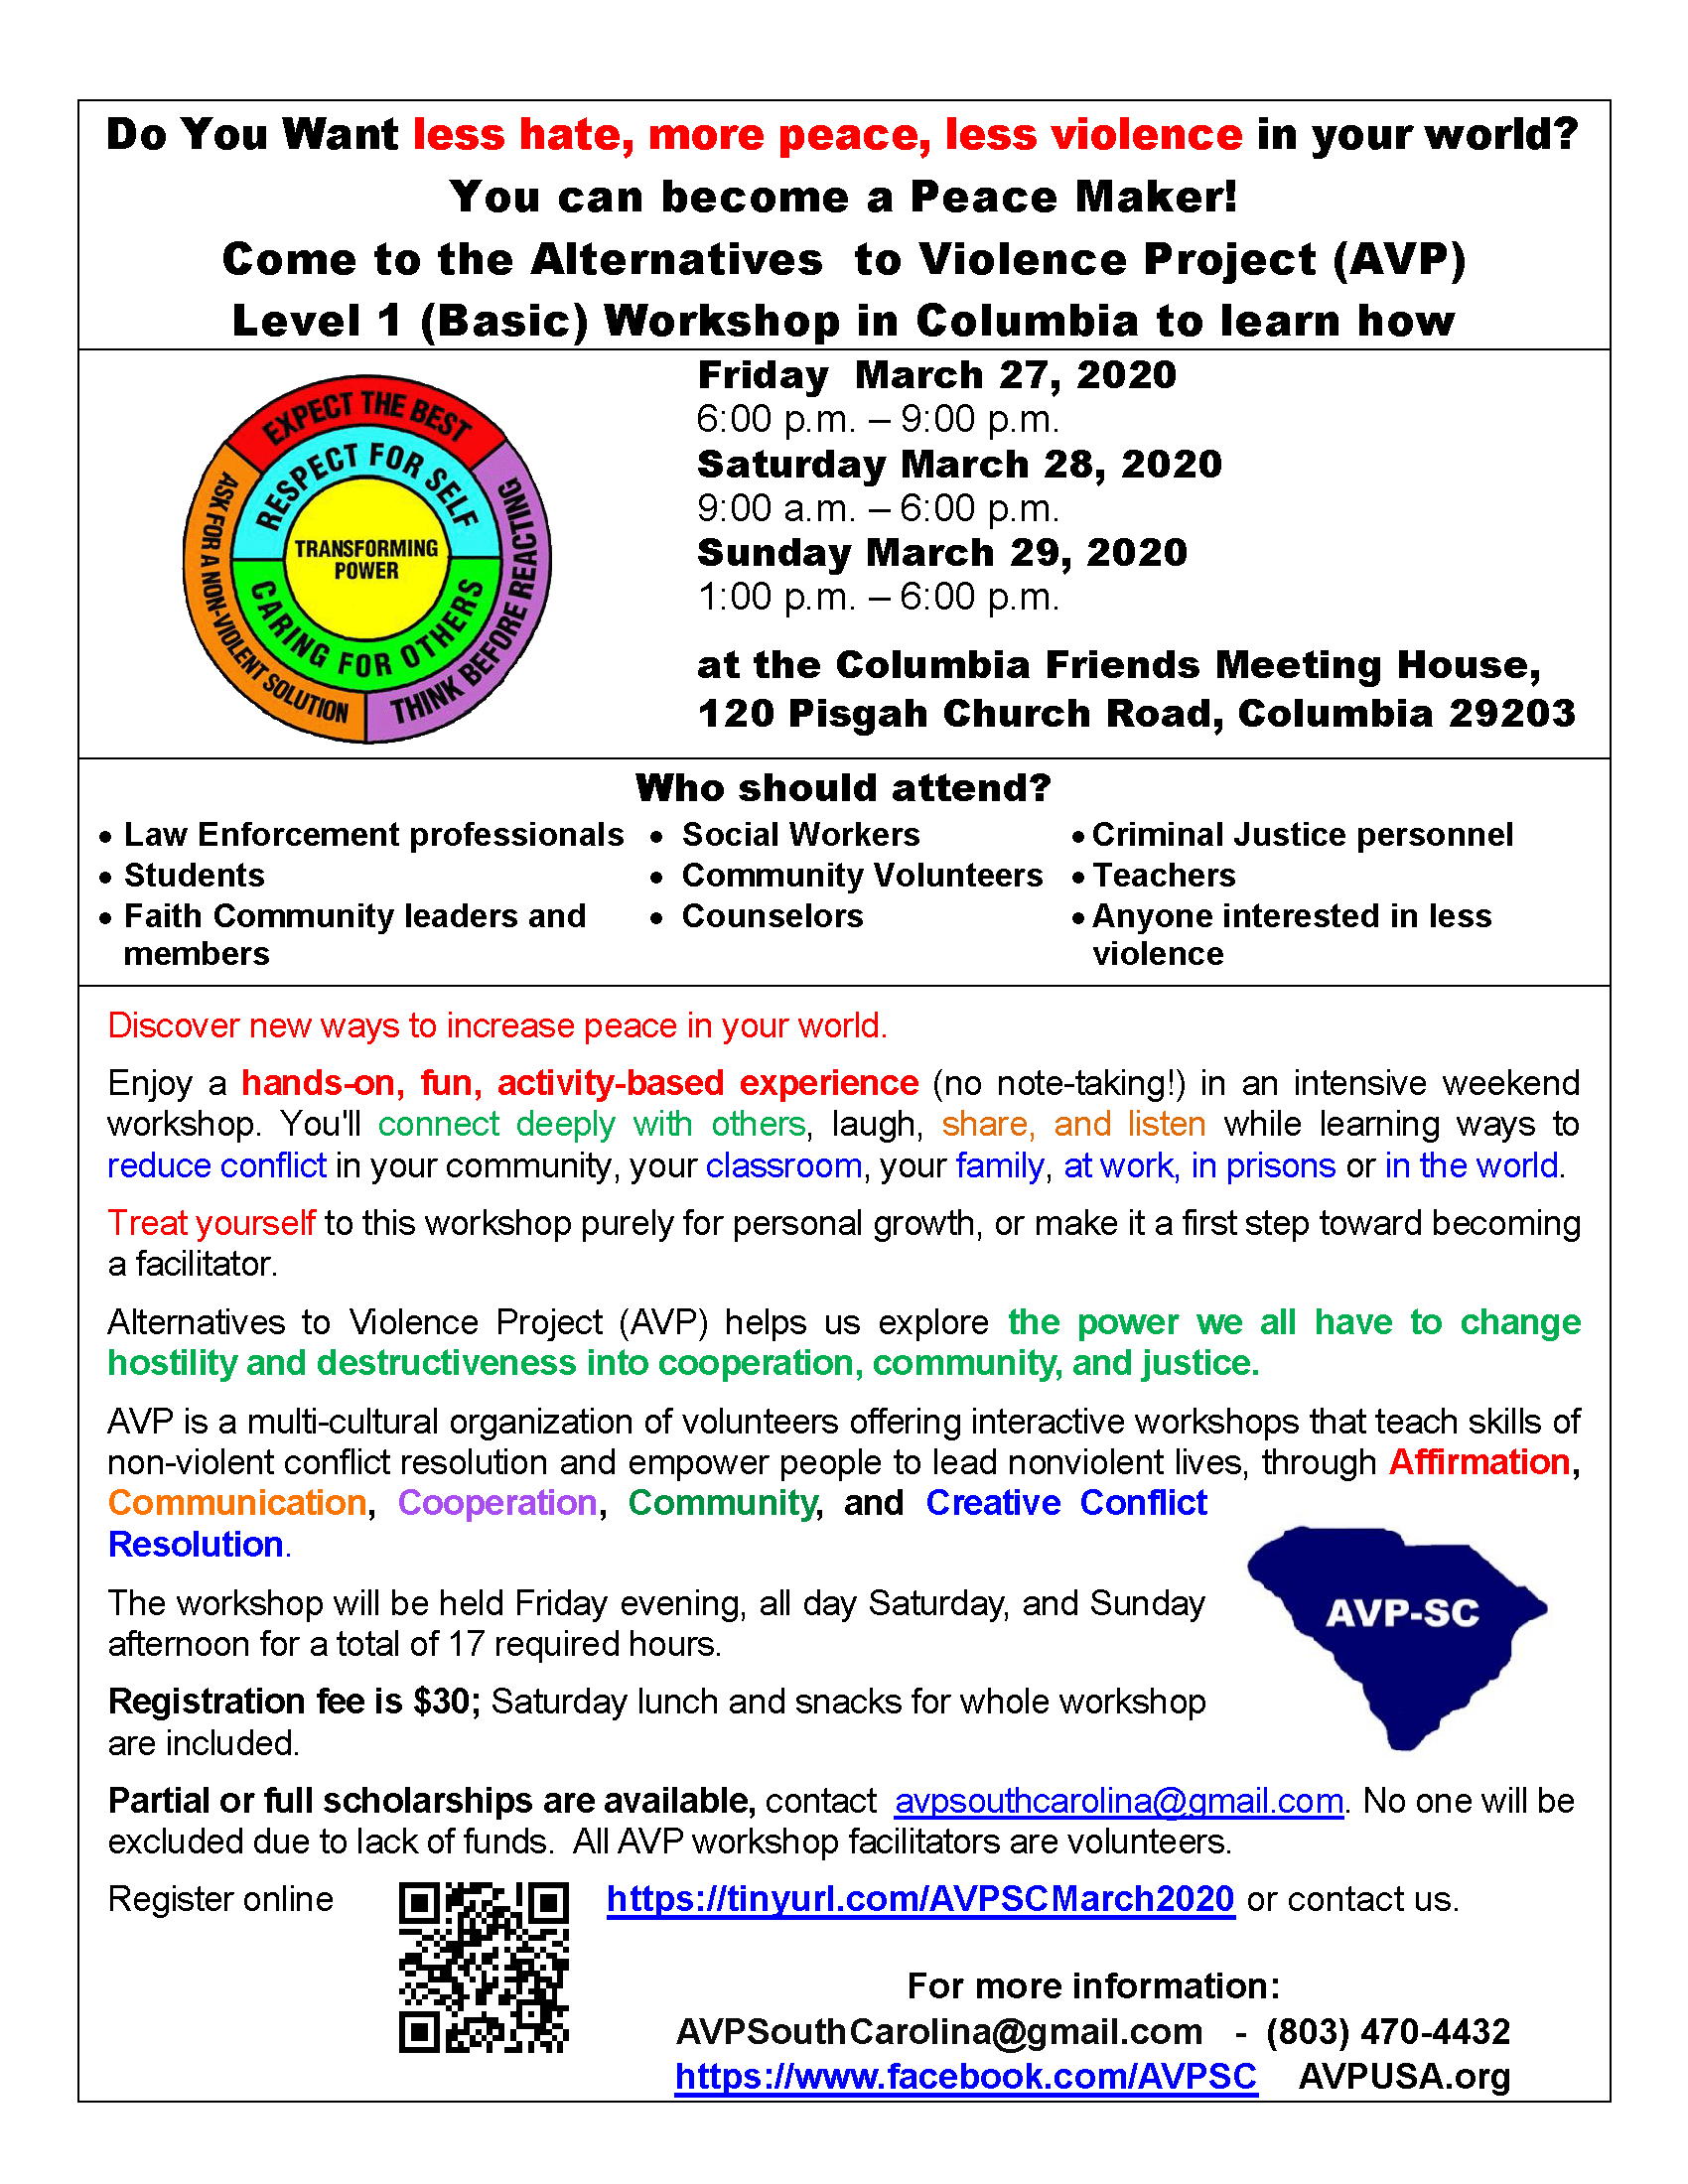 Alternatives to Violence Project: Register early for this 3 Day Workshop - Columbia, SC @ Columbia Friends Meeting House